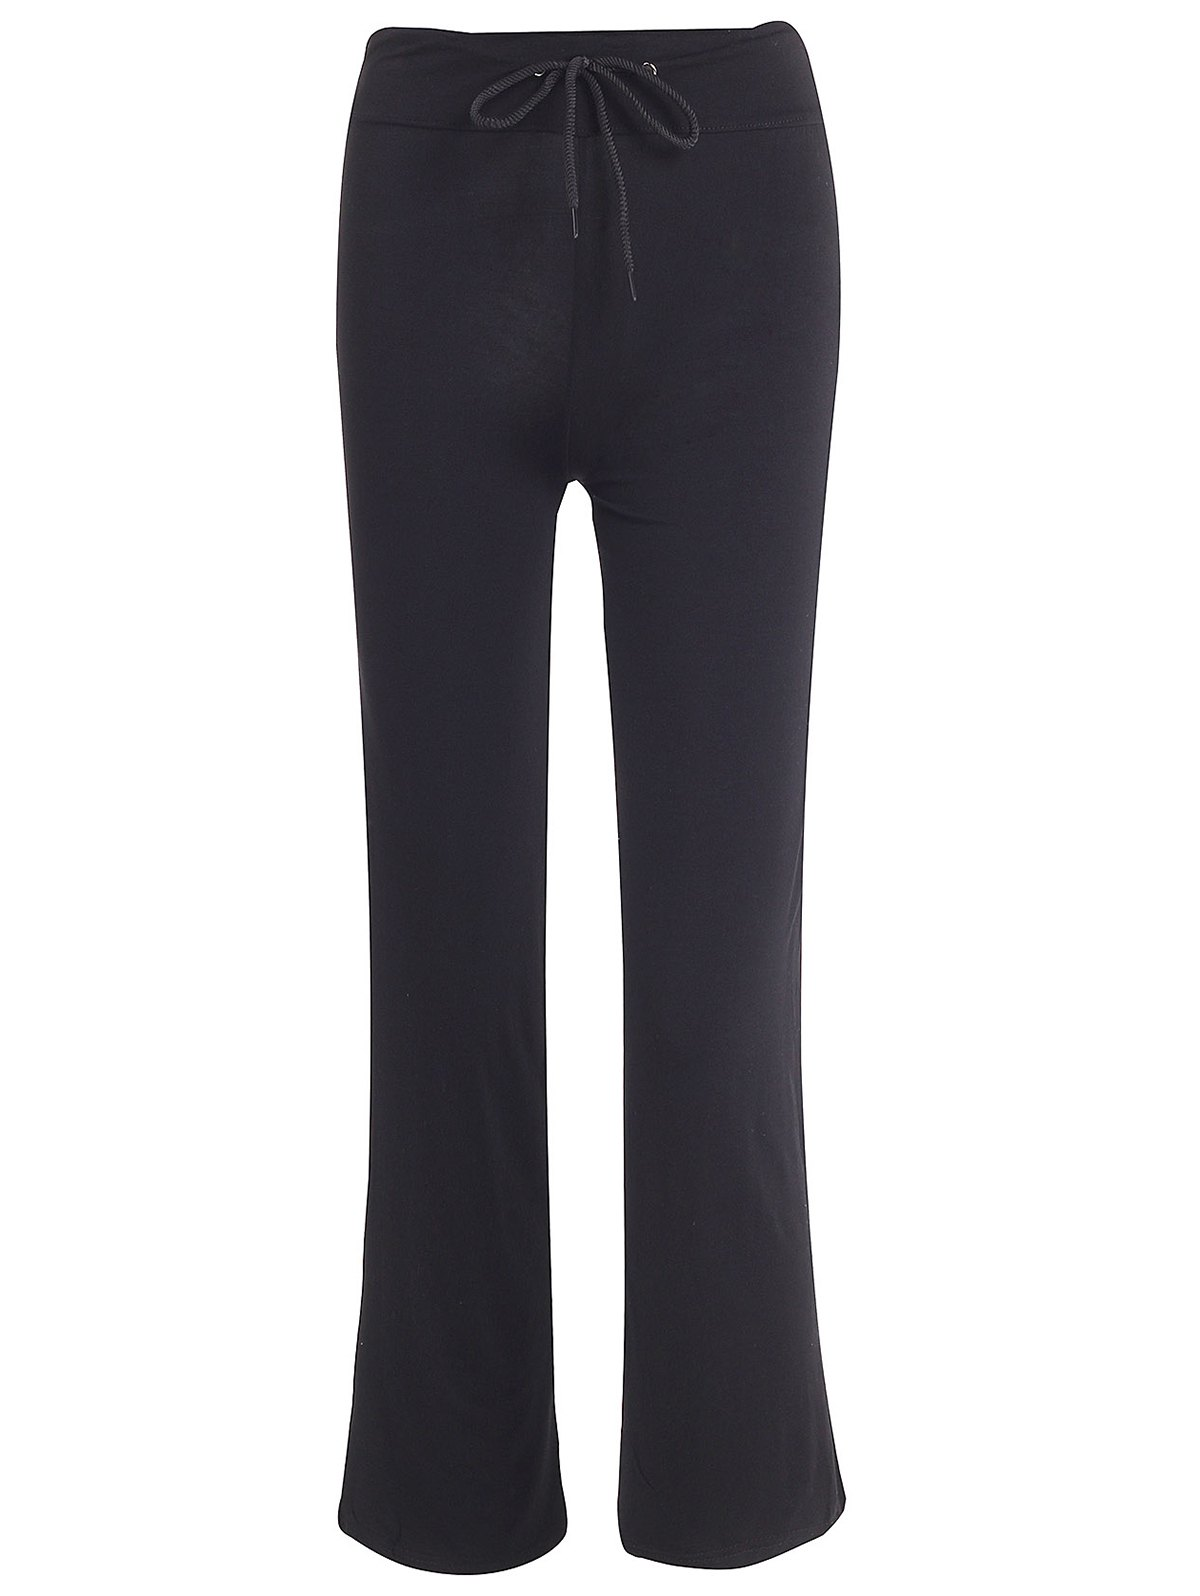 Stylish Mid-Waisted Drawstring Solid Color Women's Yoga Pants - BLACK M